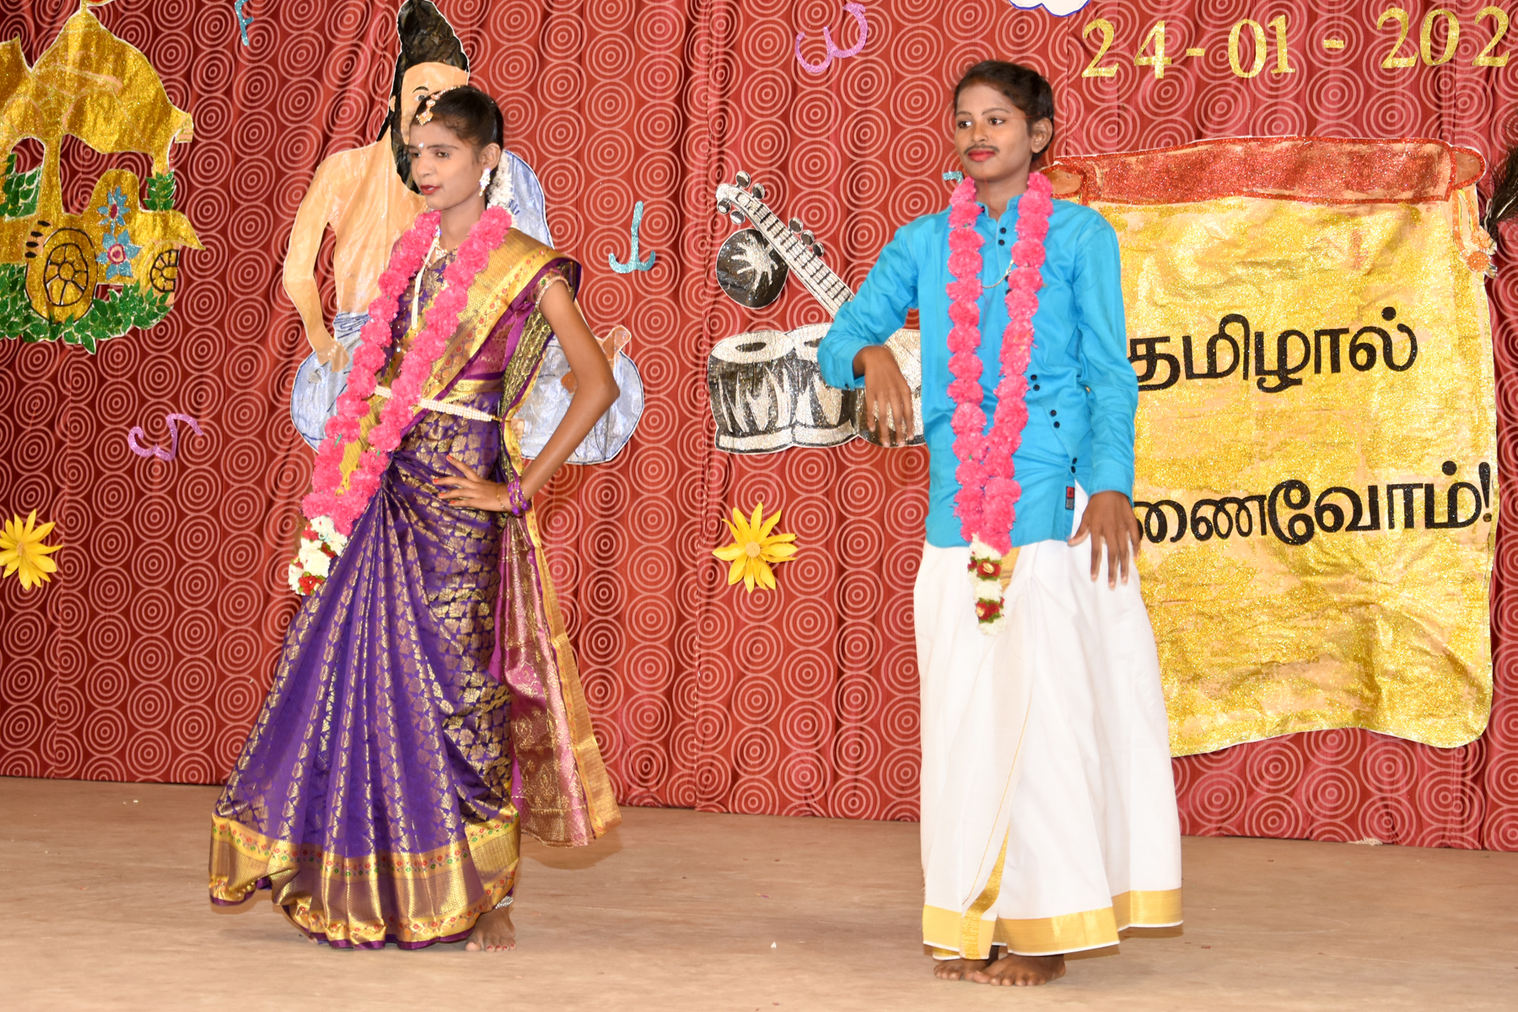 An emotionallyl moving dance-drama depicting the evil of dowry system